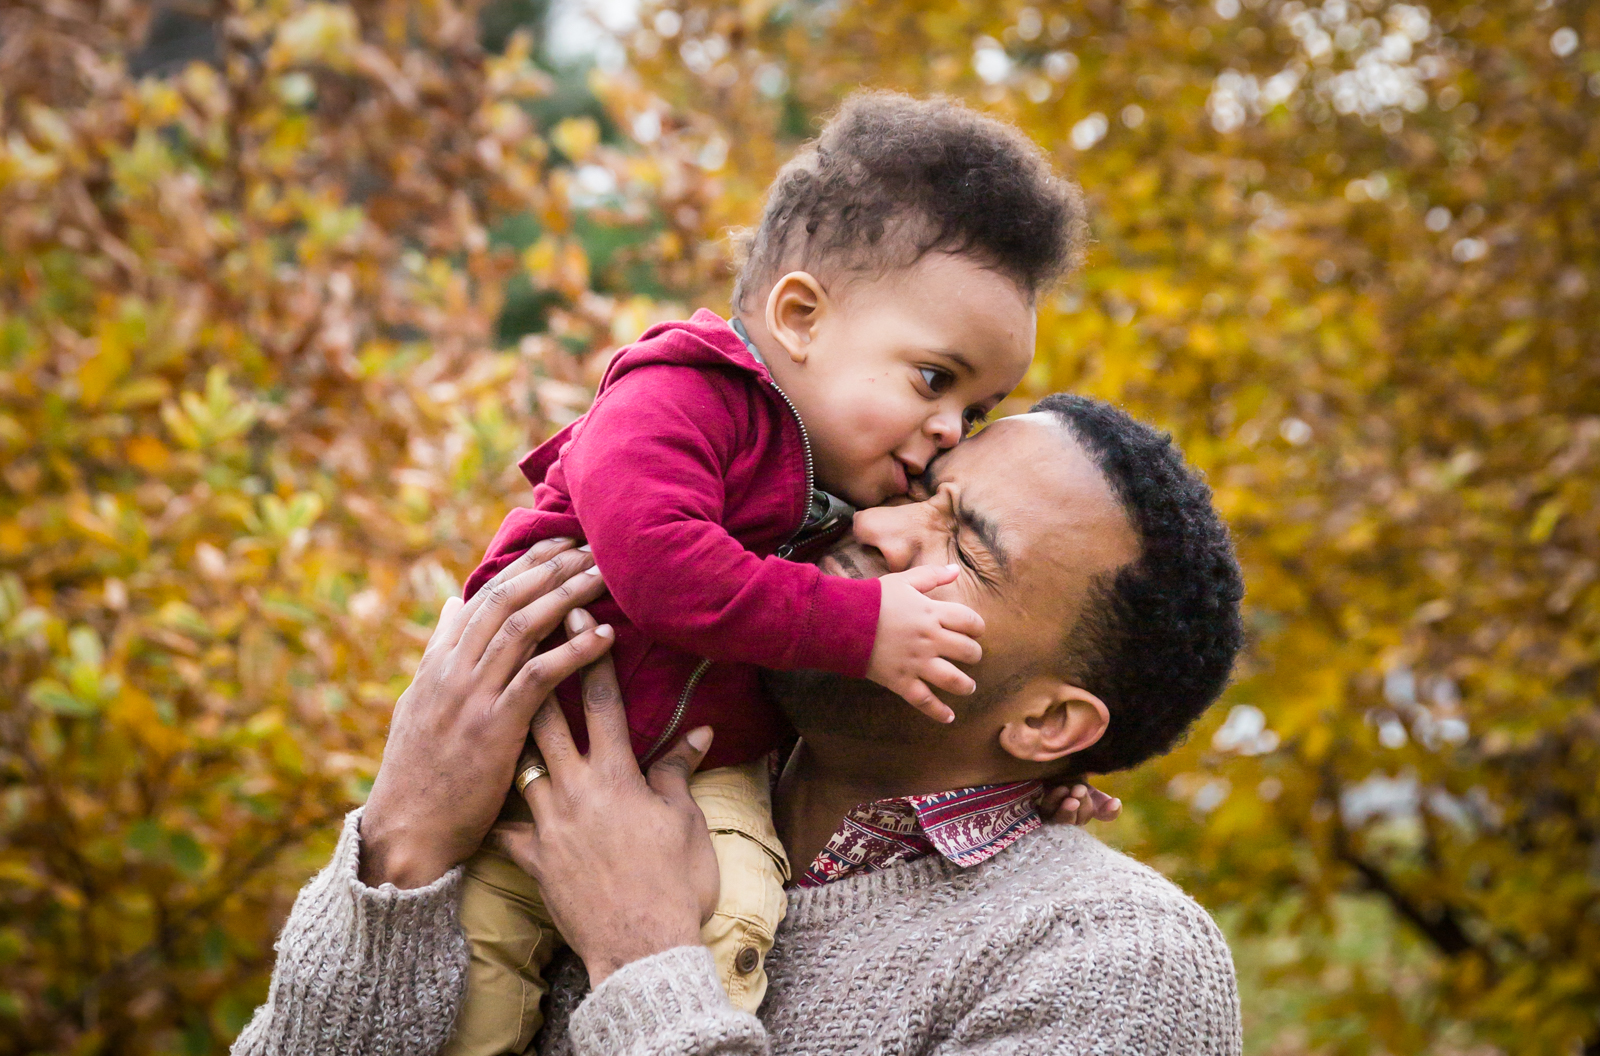 Flushing Meadows Corona Park family portrait of son kissing father's face